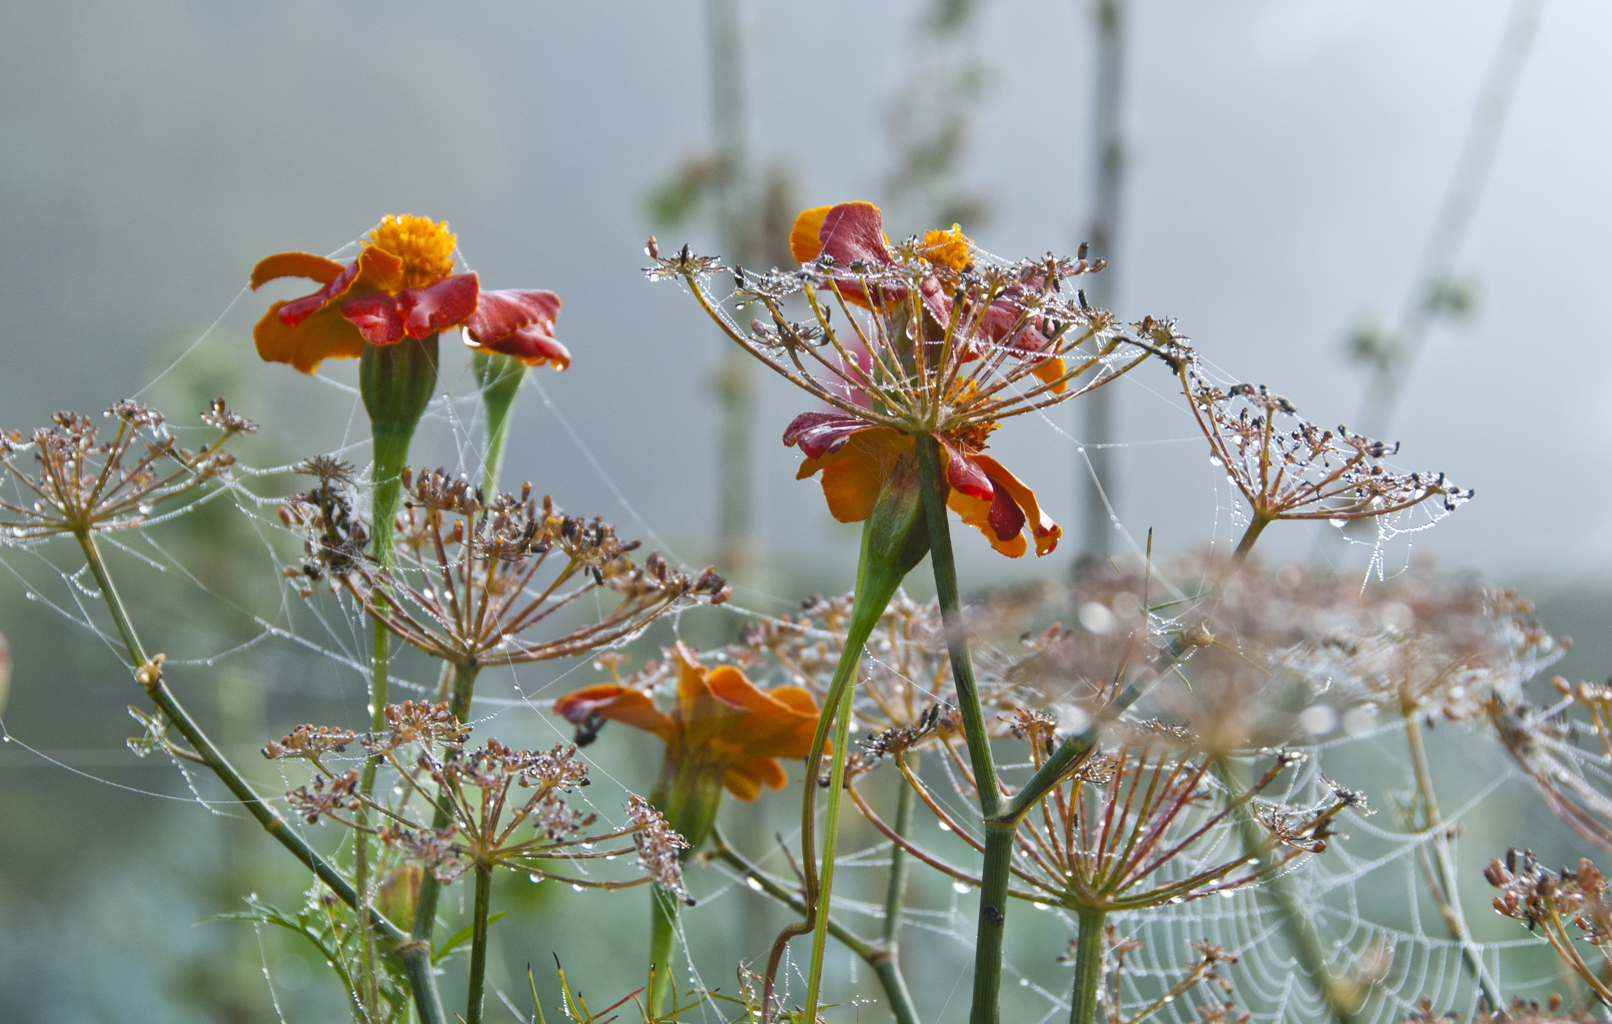 Tagetes at Great Dixter in October by Carol Casselden